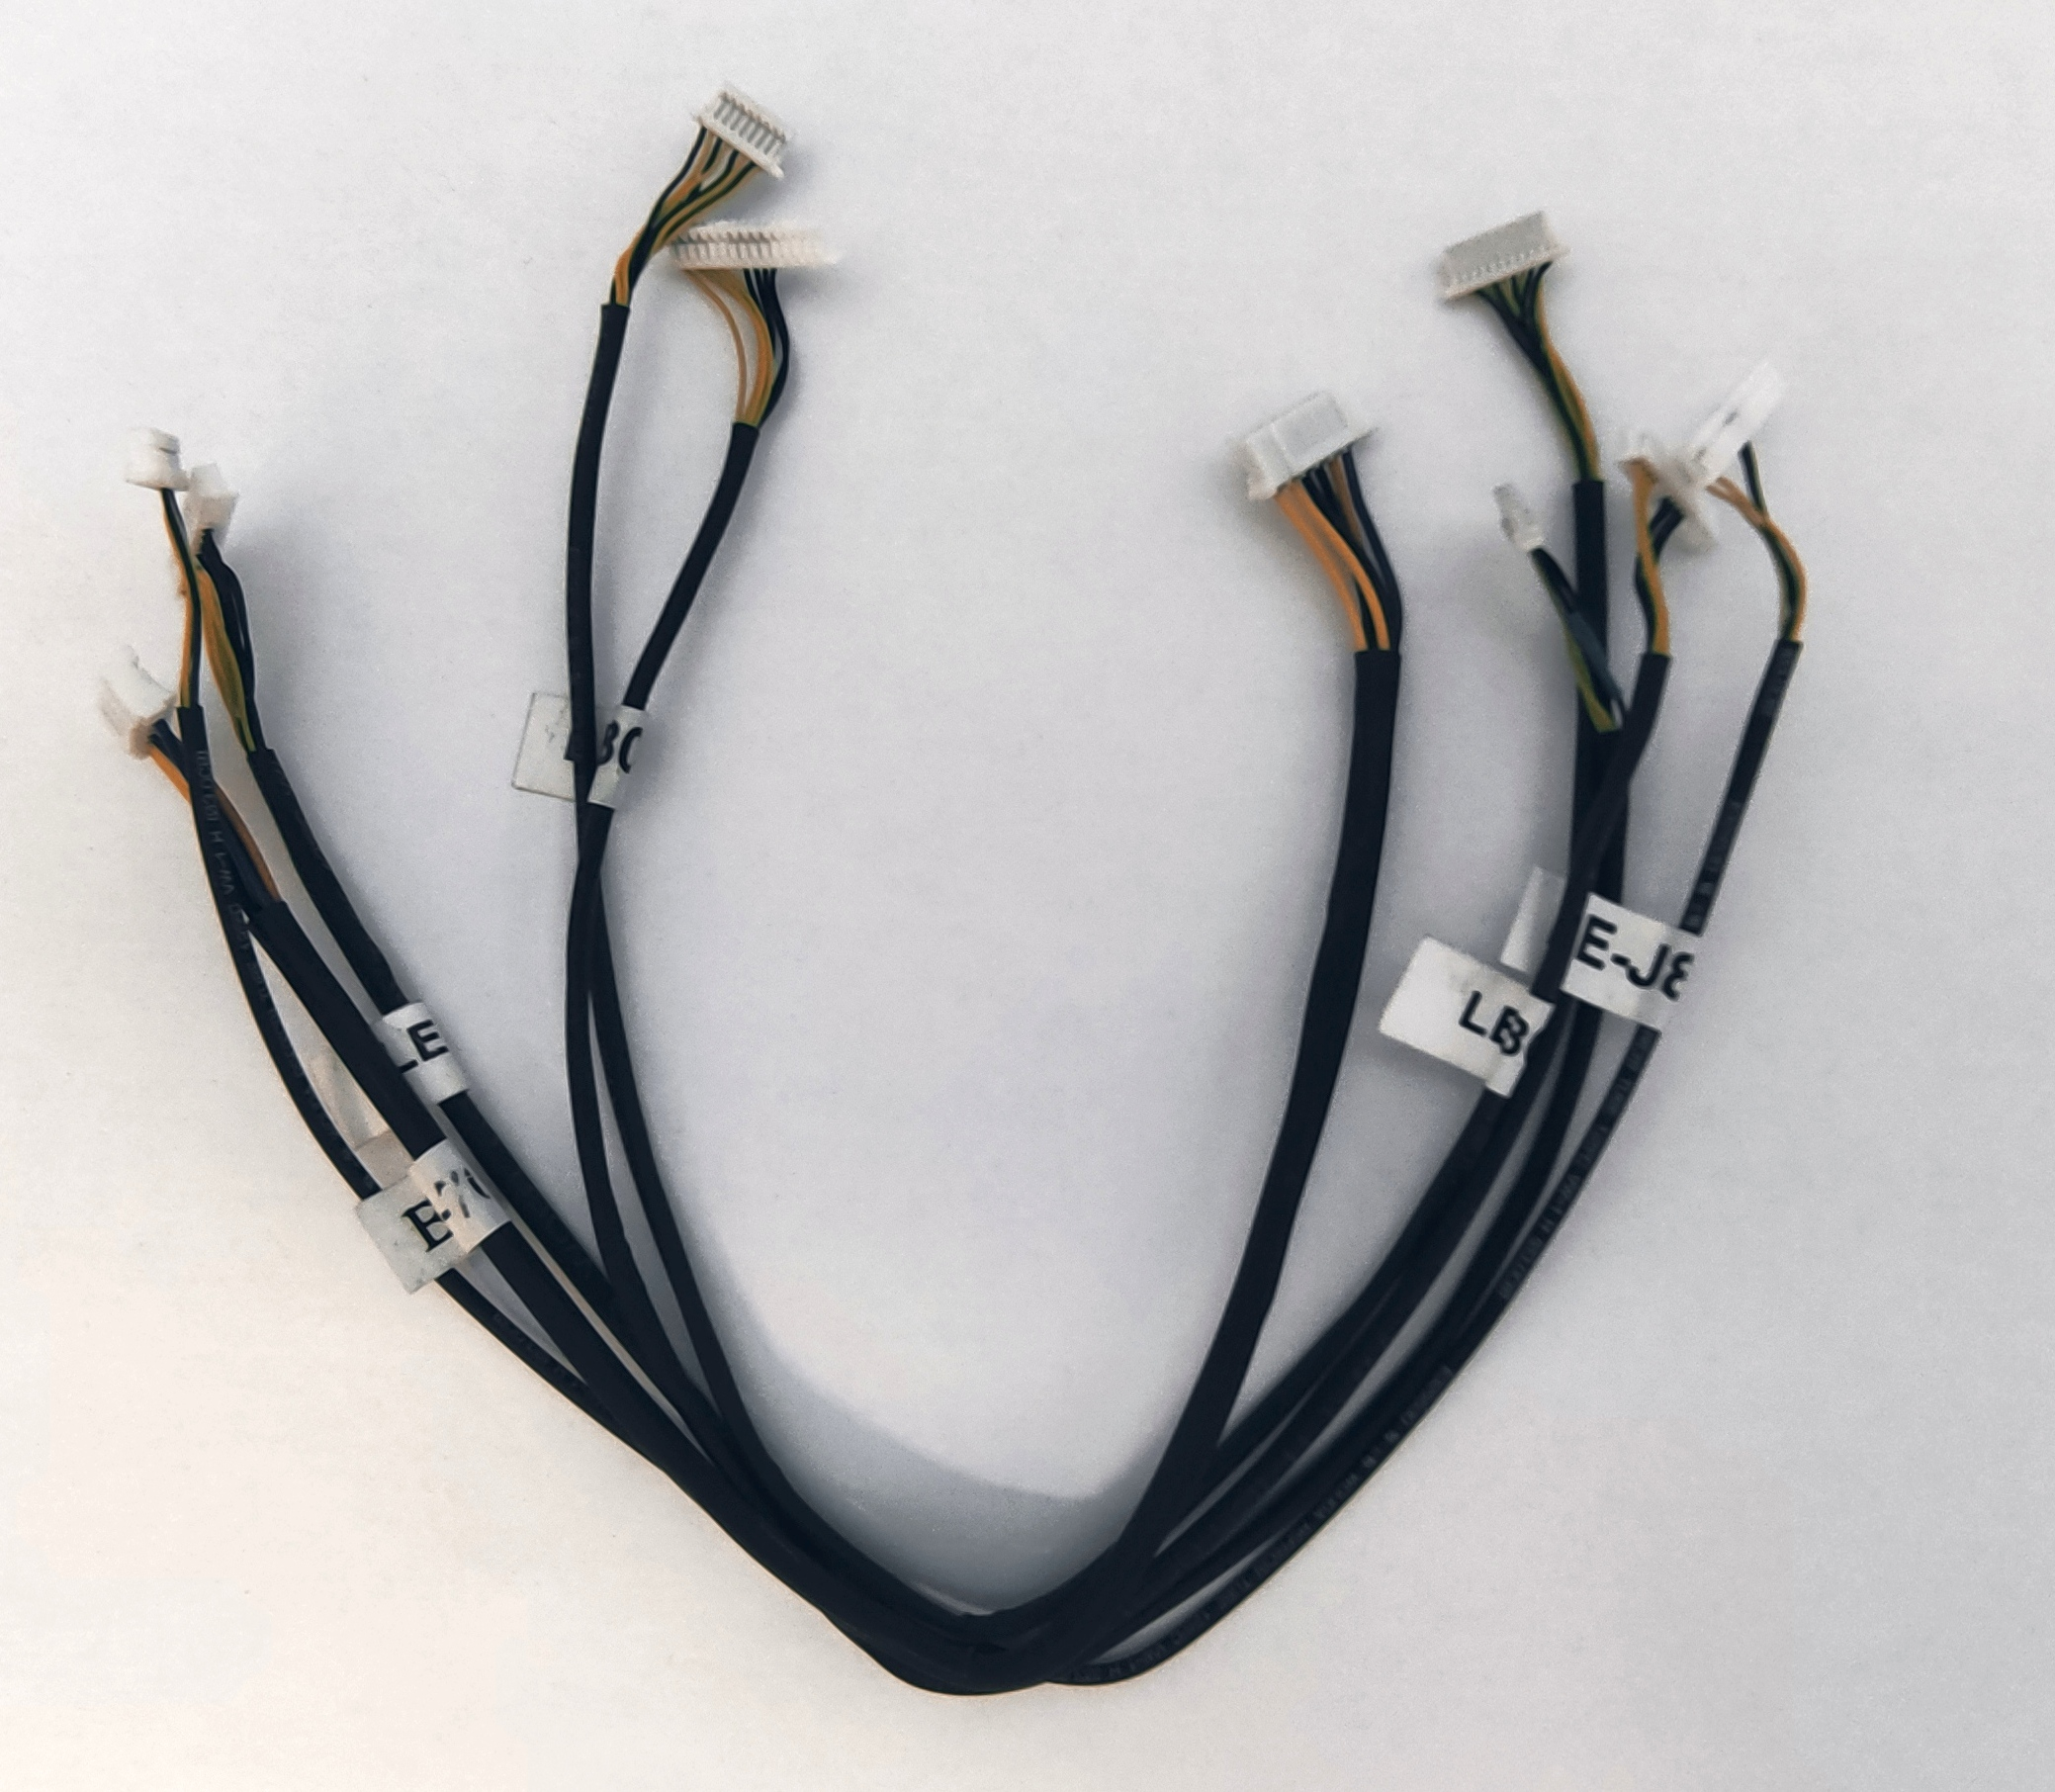 BT-cable-71962